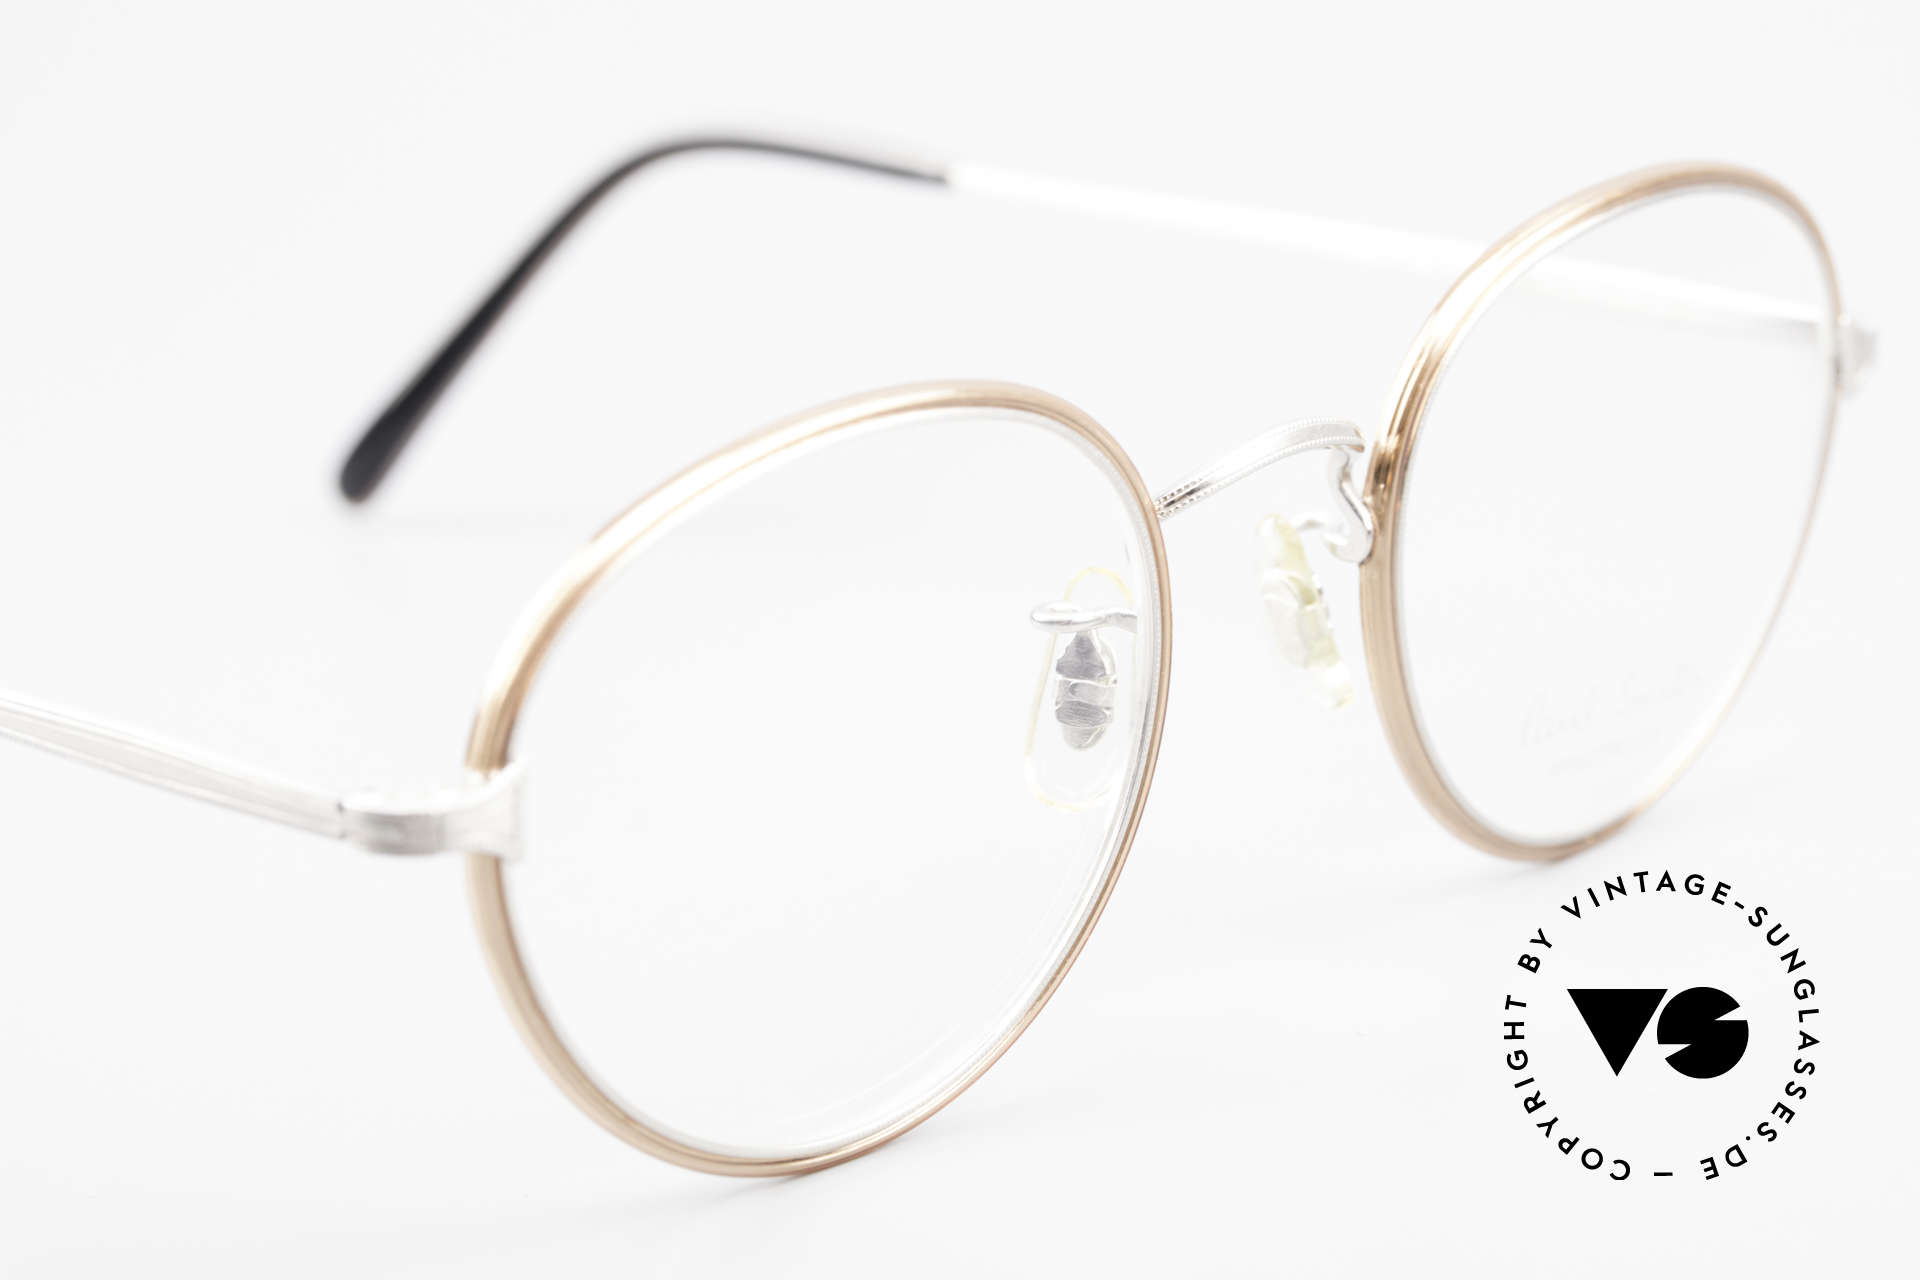 Paul Smith PSR109 Old Panto Frame Made in Japan, unworn masterpiece can be glazed with lenses of any kind, Made for Men